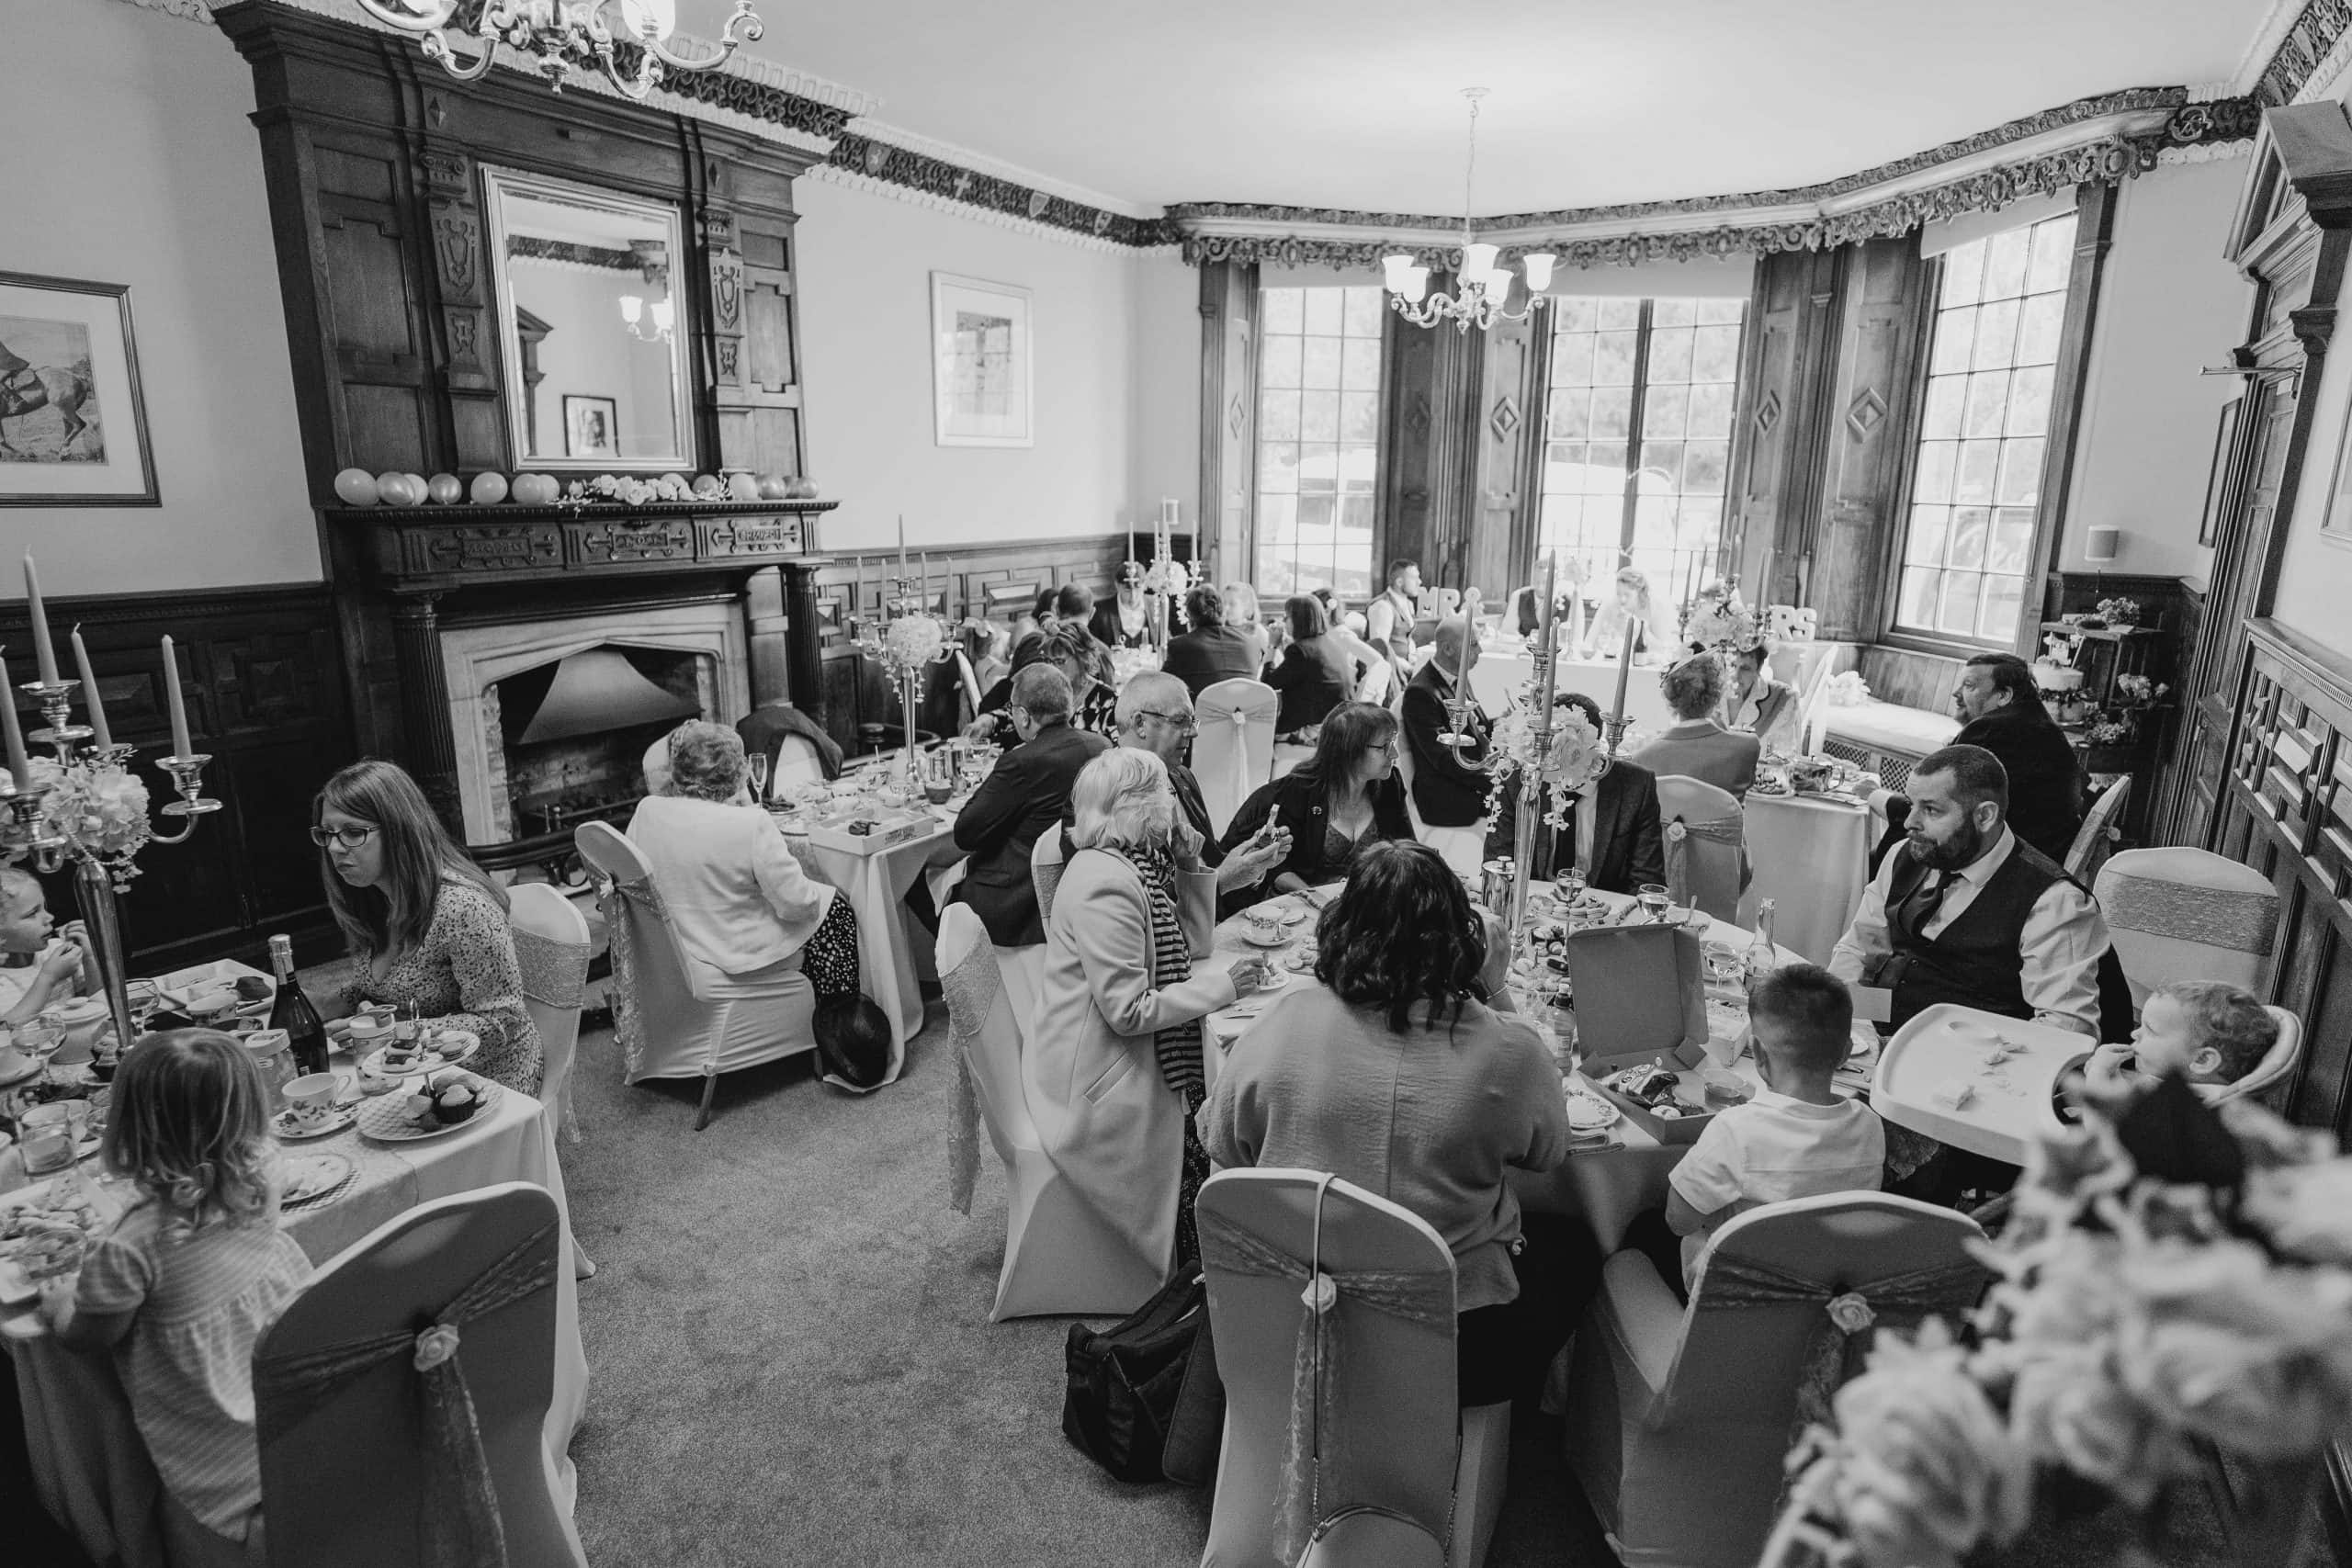 Lincoln wedding photographer - wedding afternoon tea at Skendleby Hall is a magnificent Grade ll listed large country house